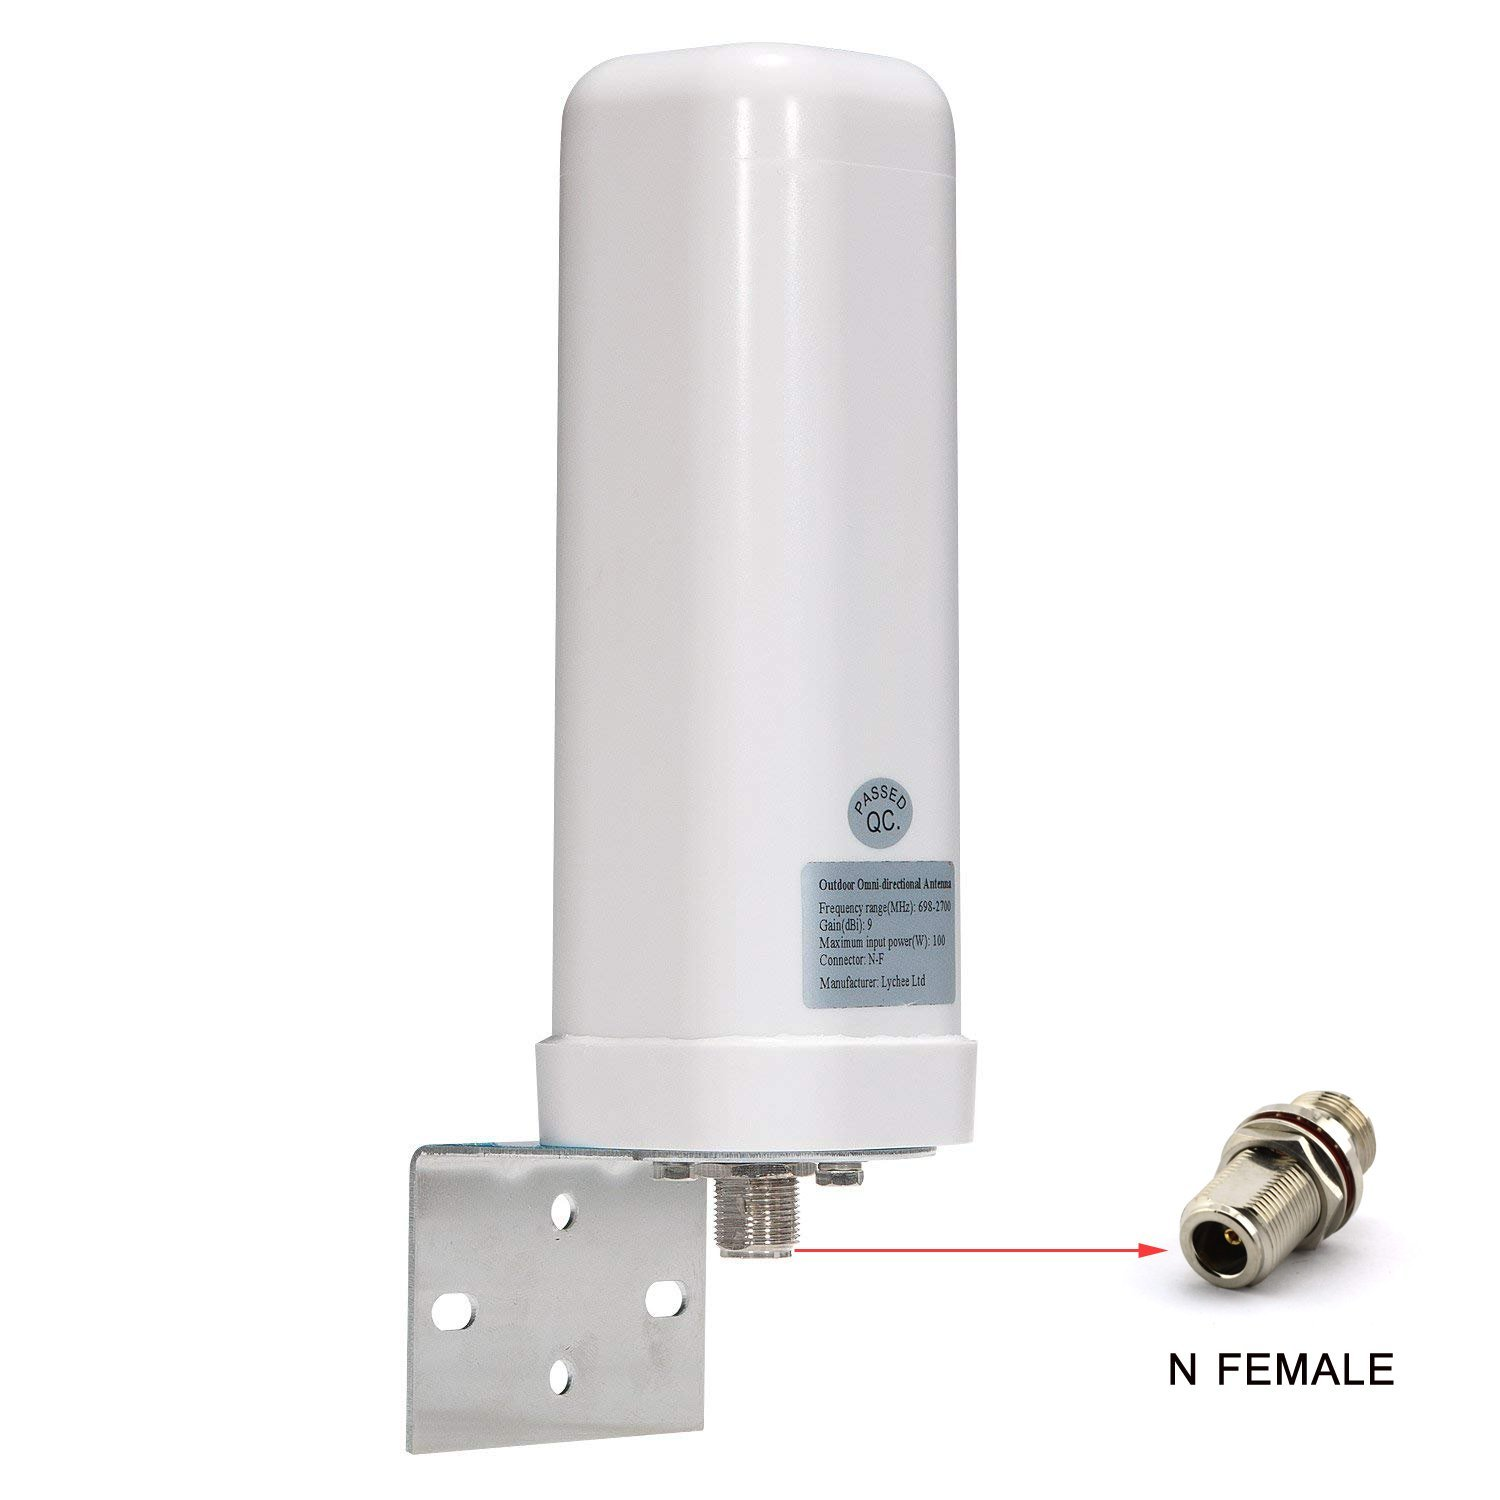 Lysignal Outdoor Omni-directional Antenna 698 to 2700MHz 9dBi for Moble Signal Booster by Lysignal